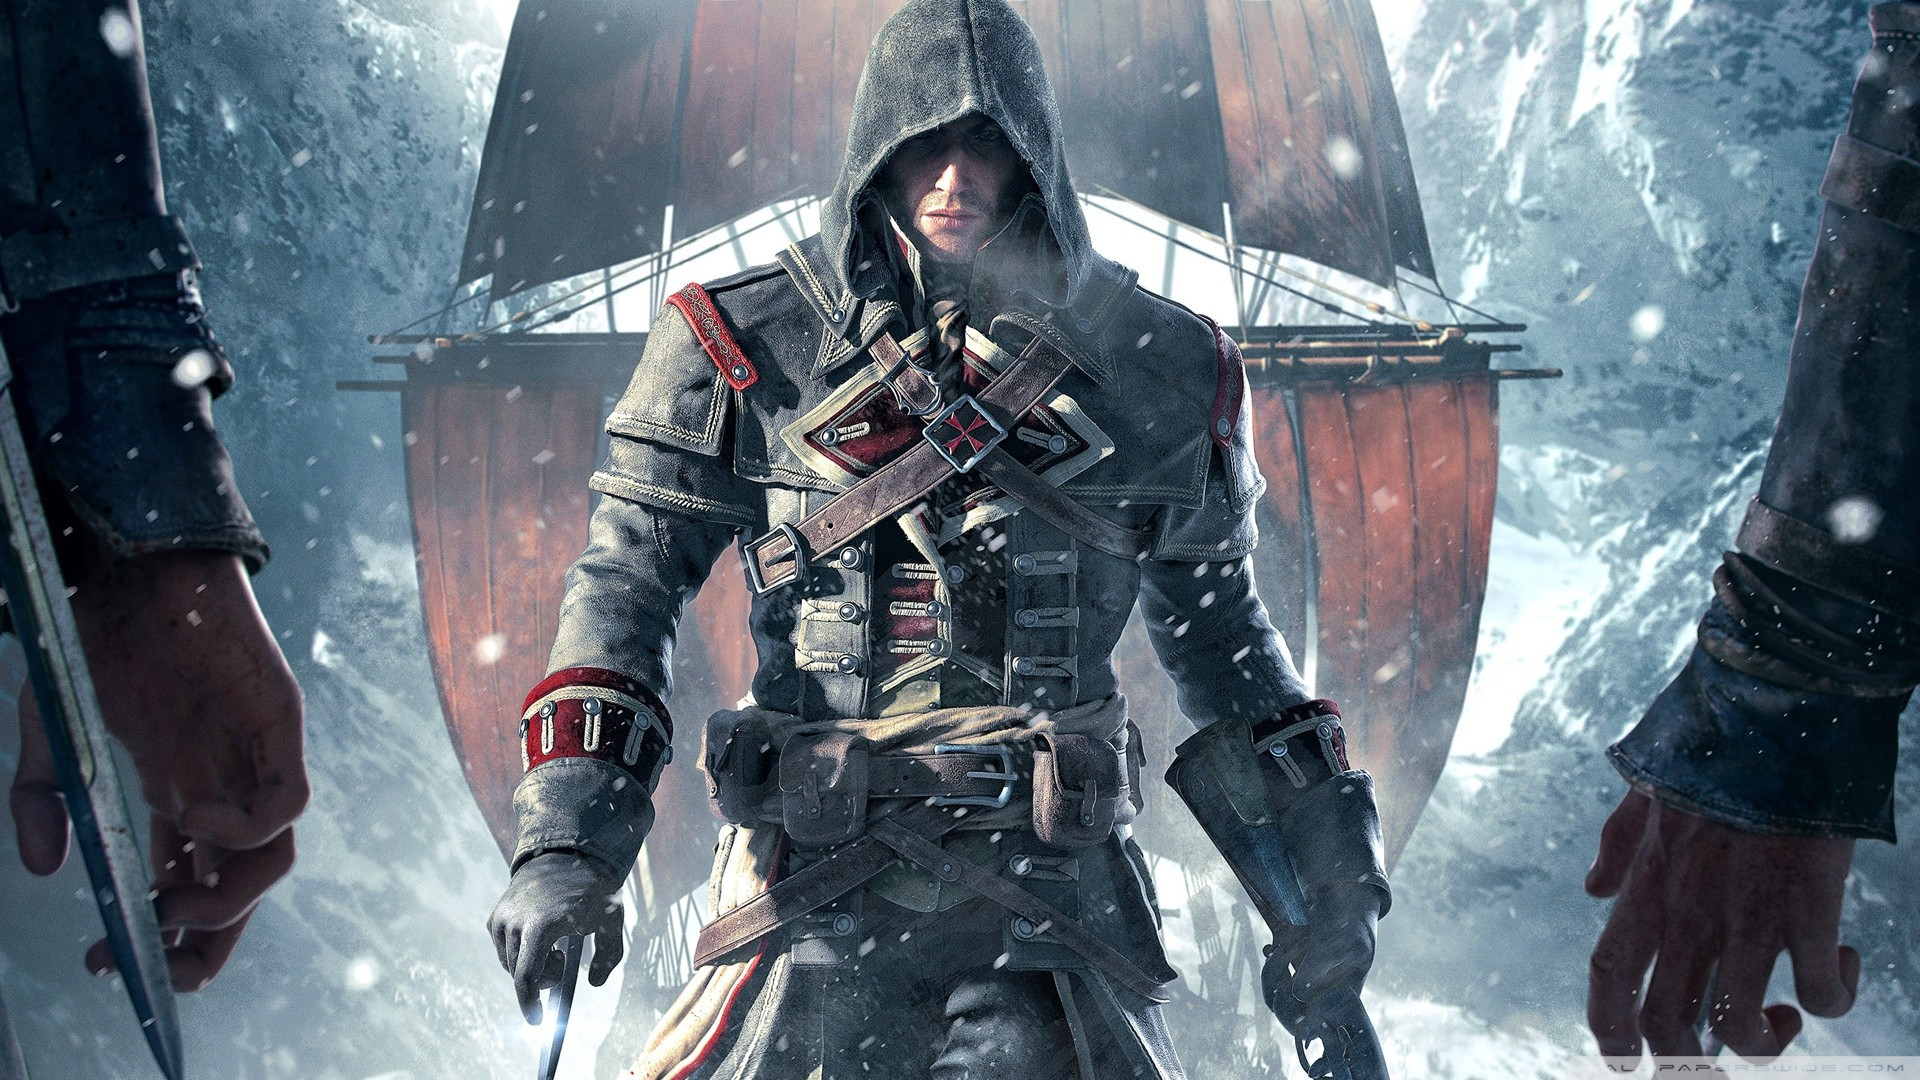 Assassins Creed Unity HD 1080p Wallpapers Pack 2 Best on Internet 1920x1080